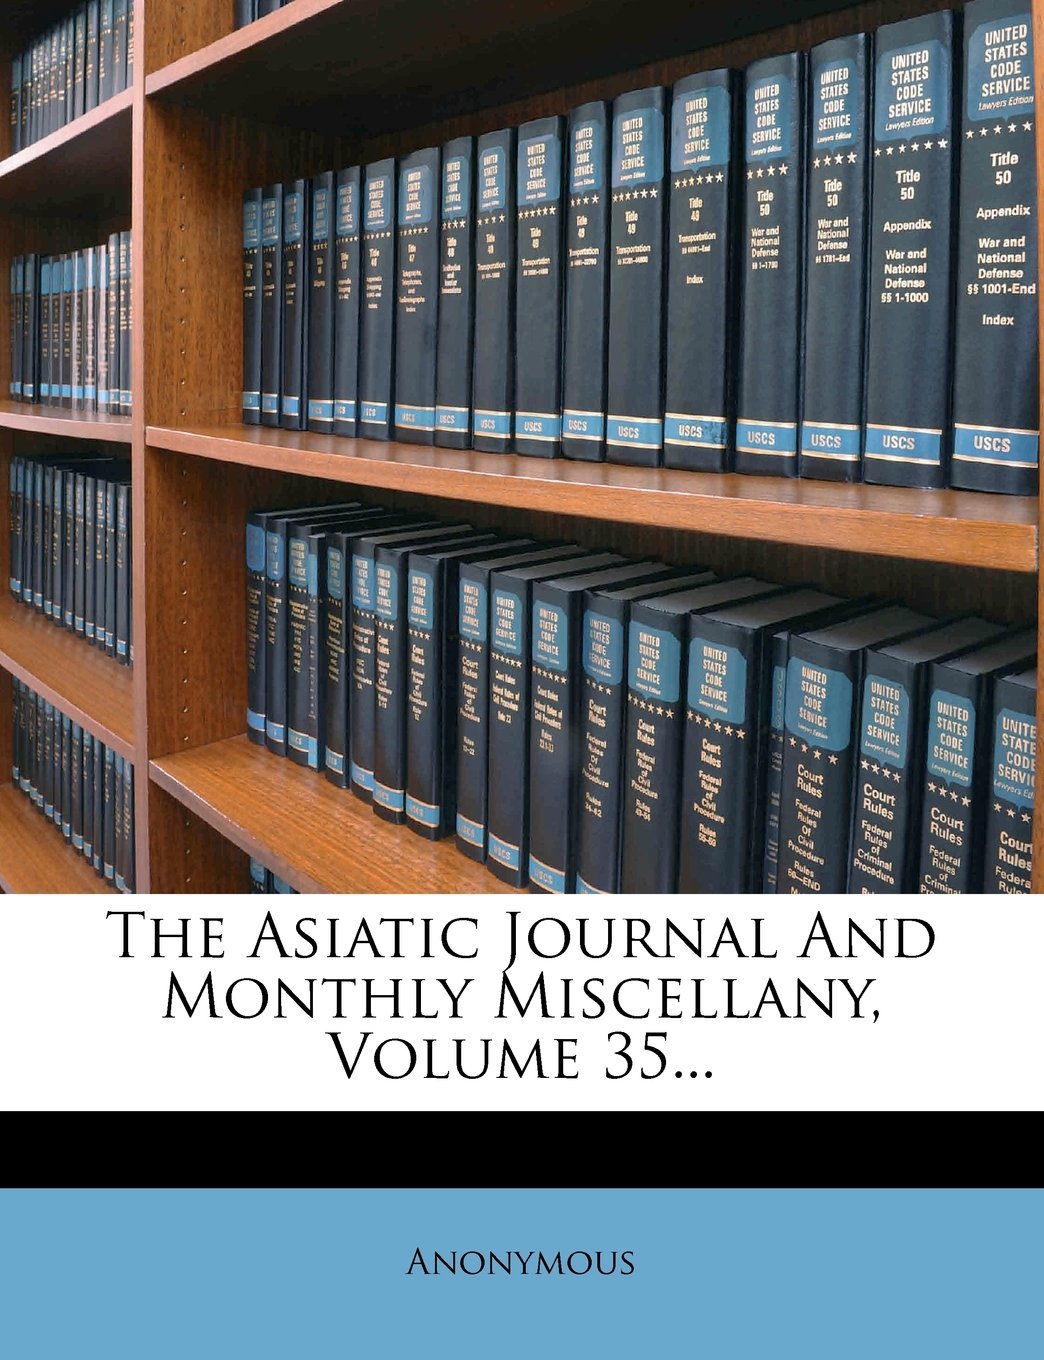 The Asiatic Journal And Monthly Miscellany, Volume 35... pdf